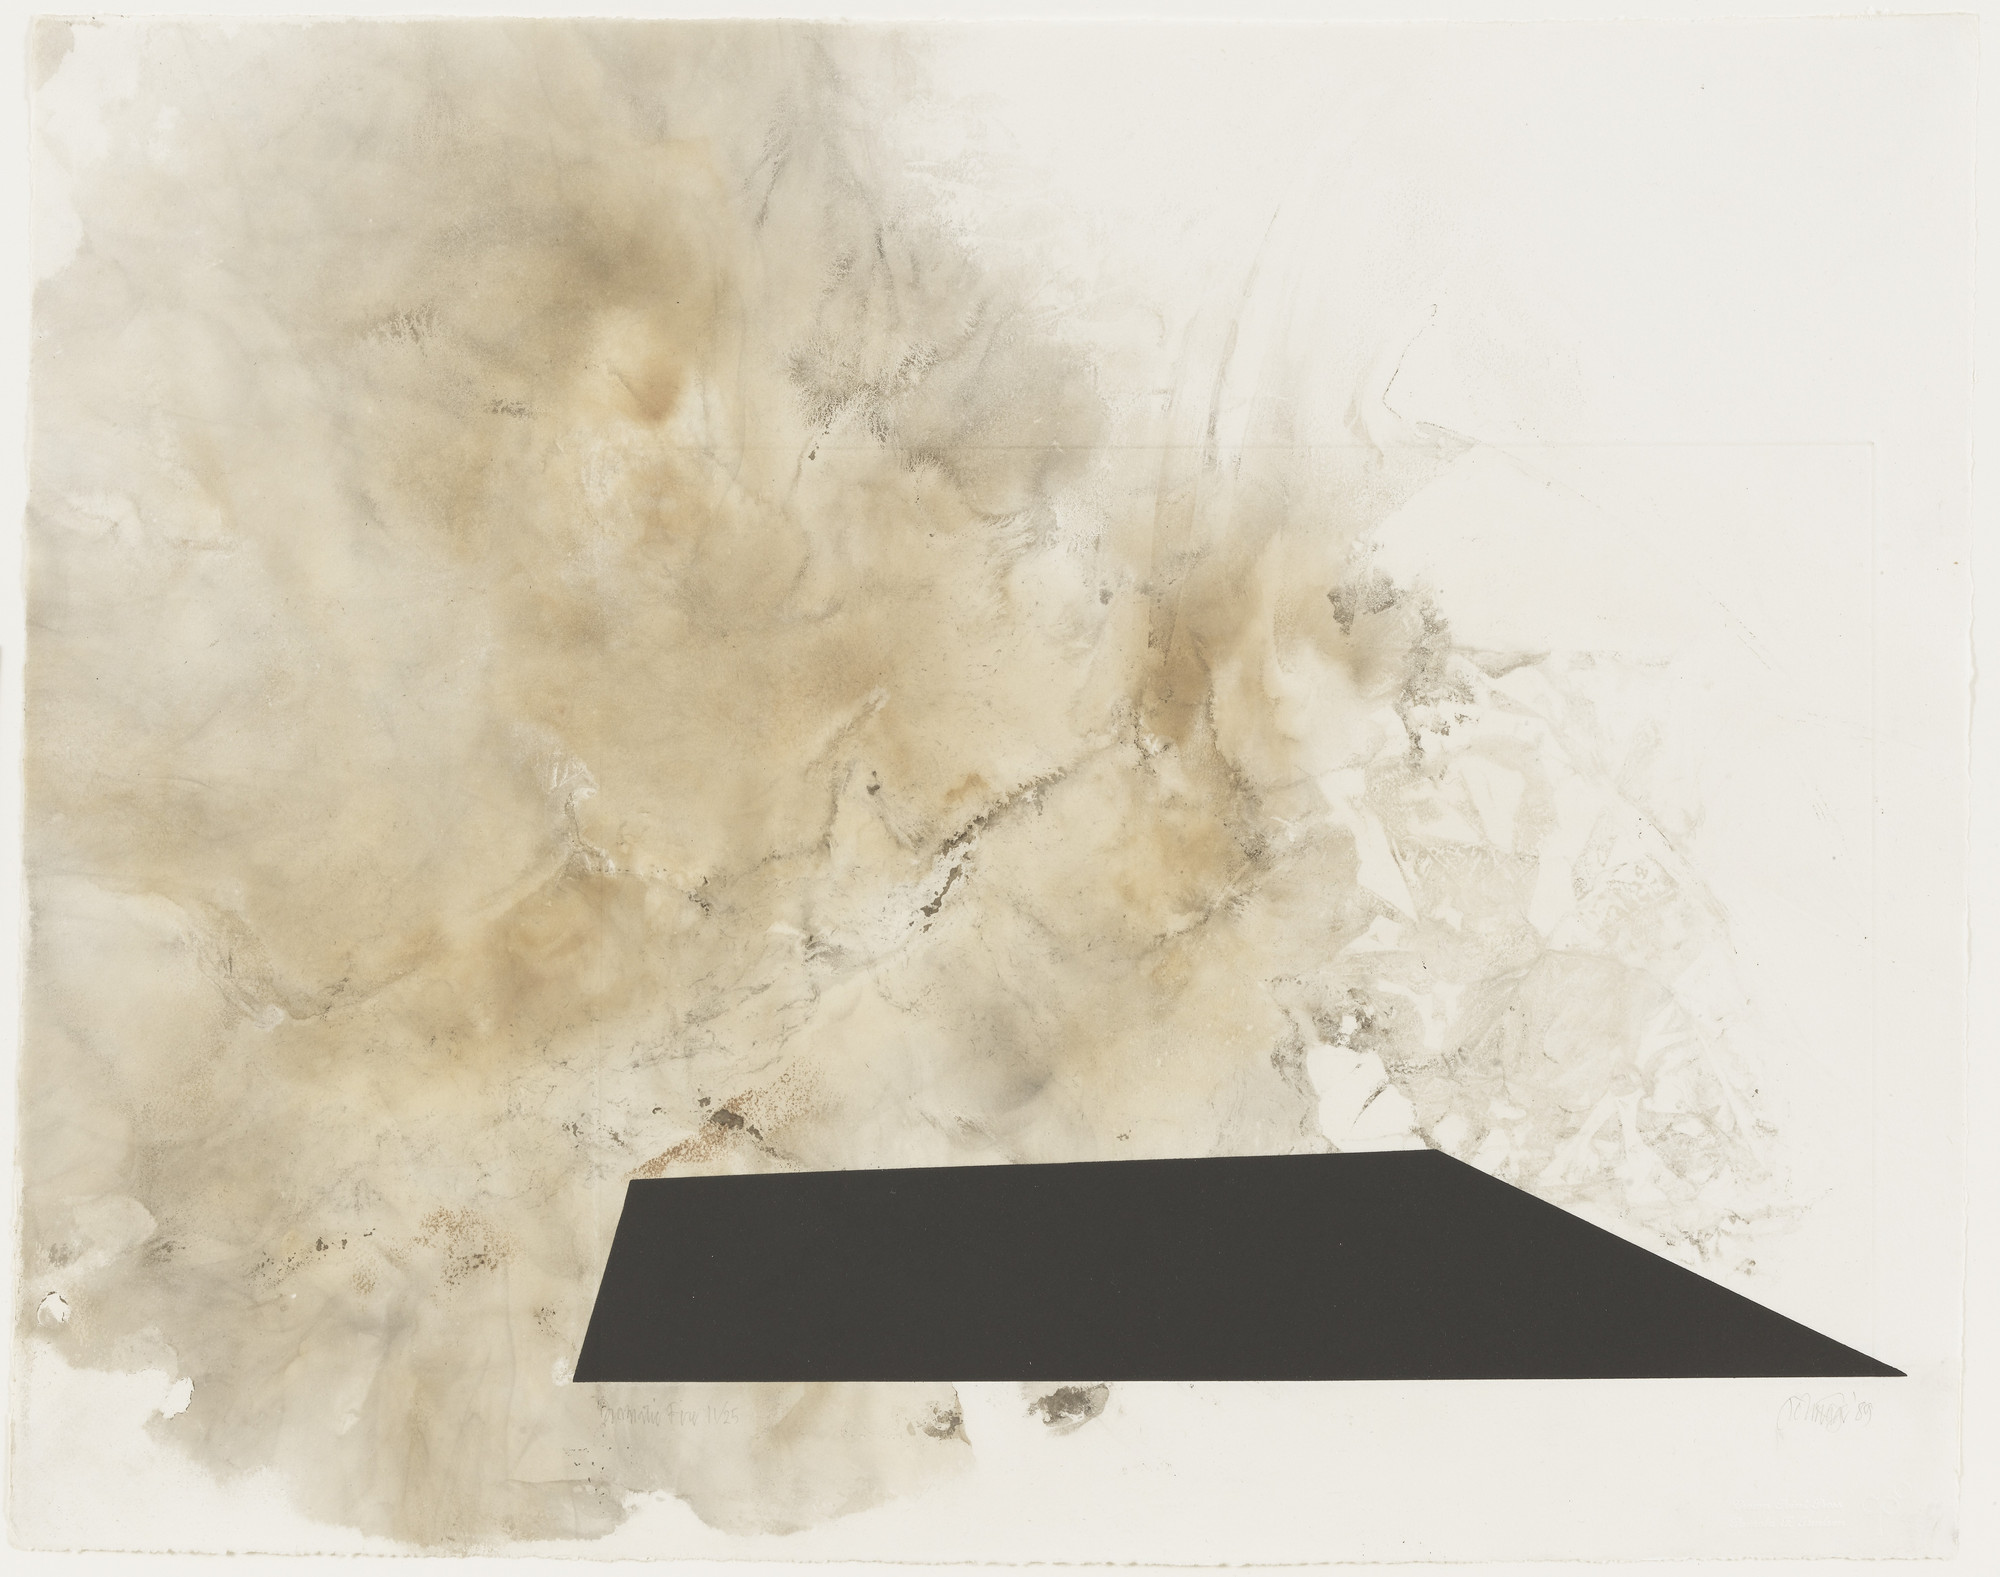 John Cage. Dramatic Fire. 1989